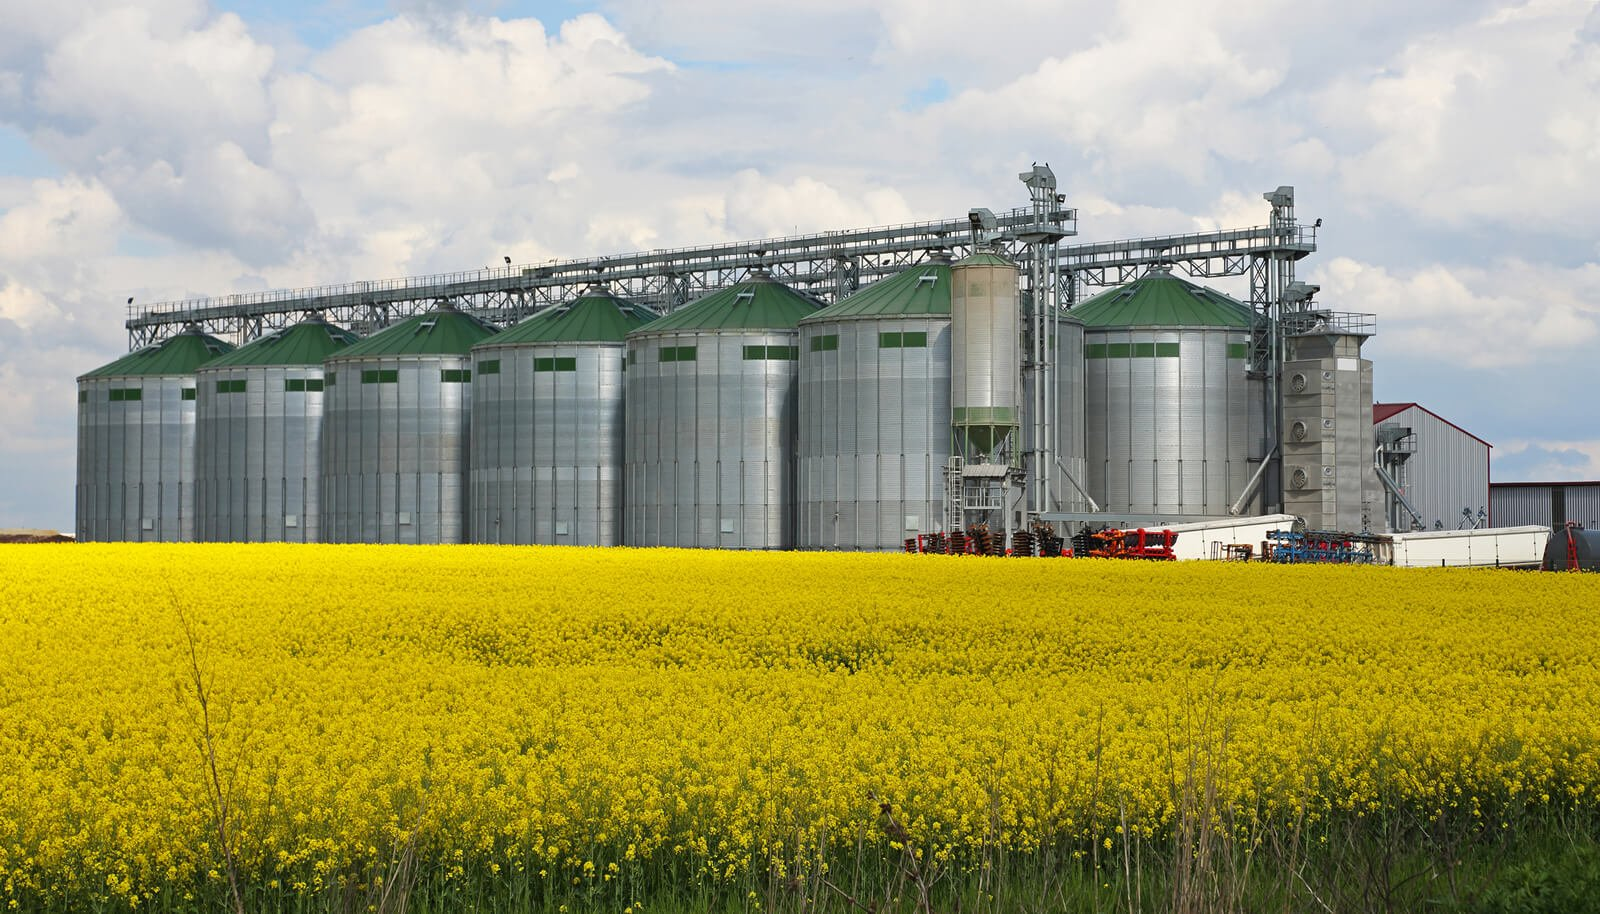 flowering canola plants in a field with silos behind